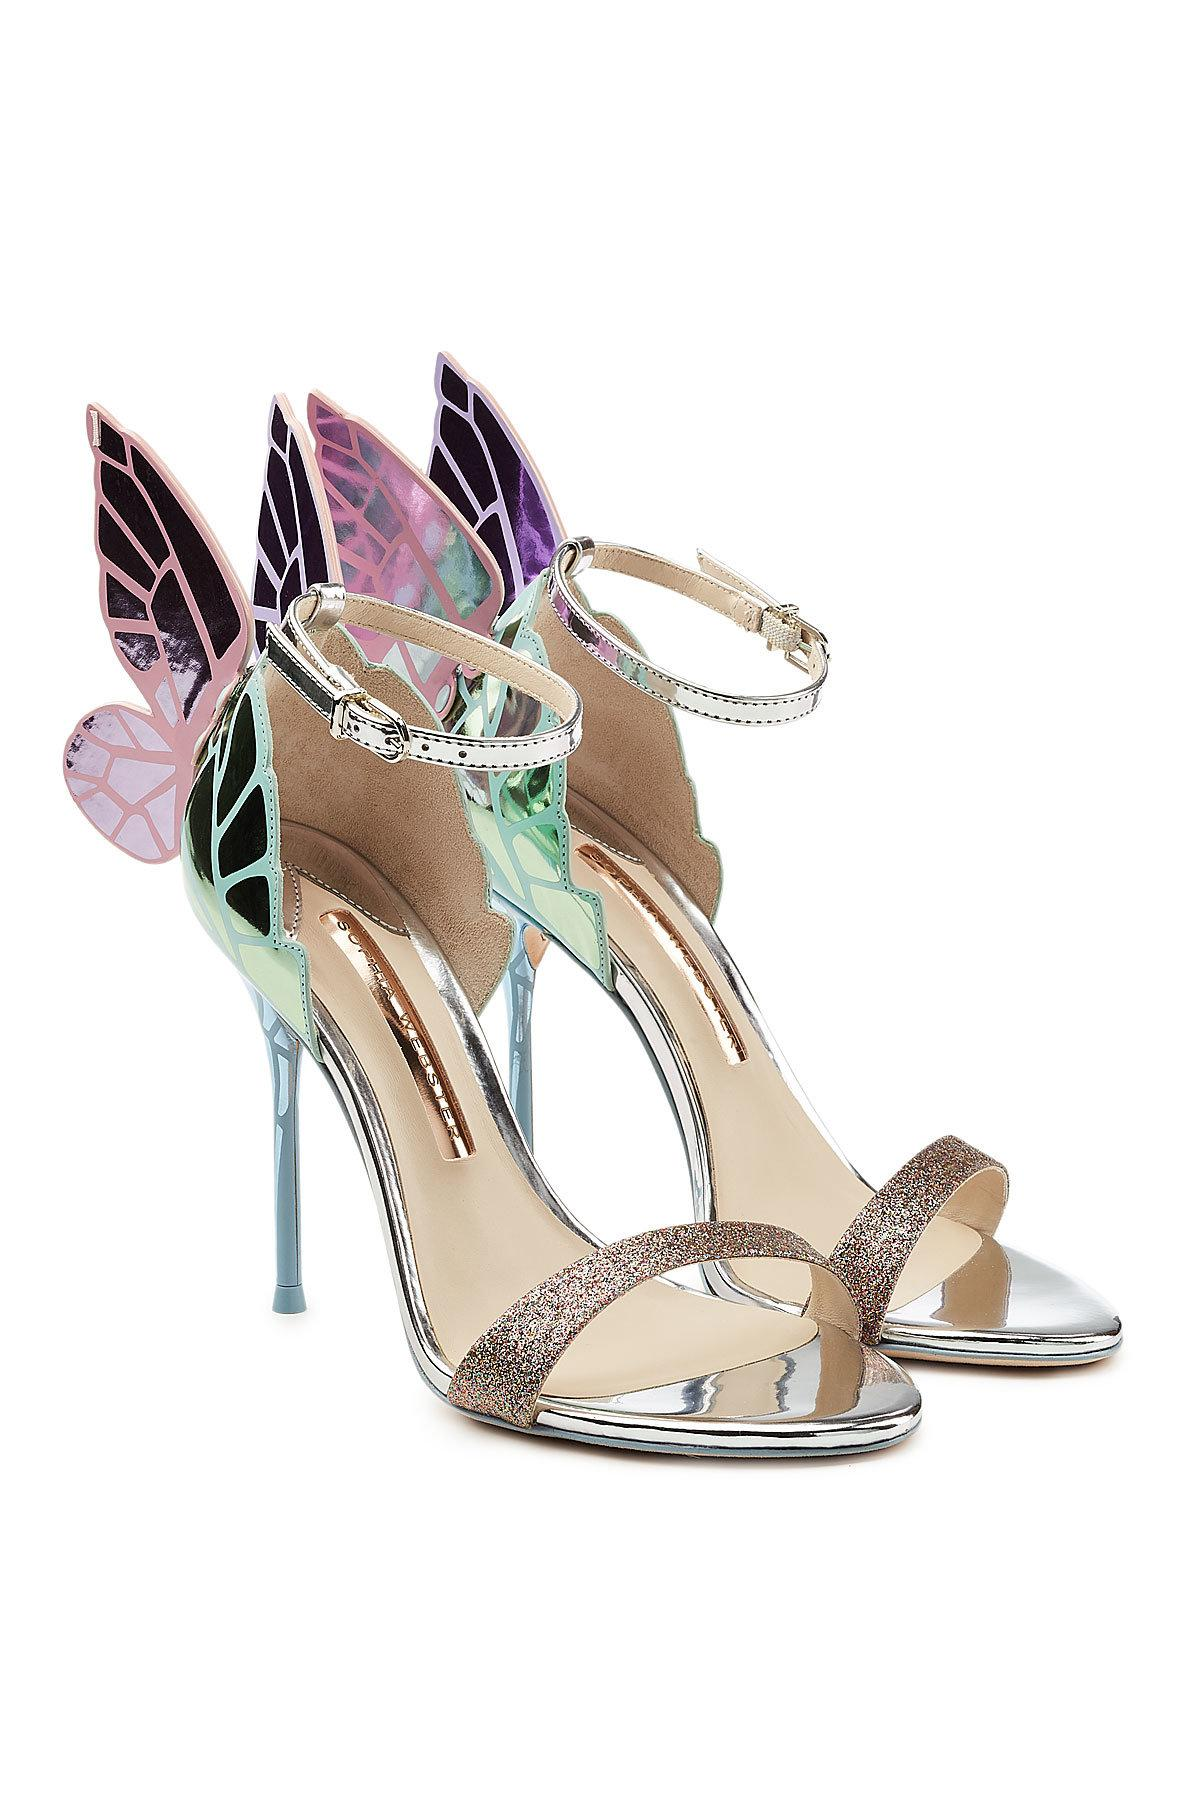 Sophia Webster Violeta Multistrap Sandals clearance best sale cheap price professional sale online clearance from china US6C1